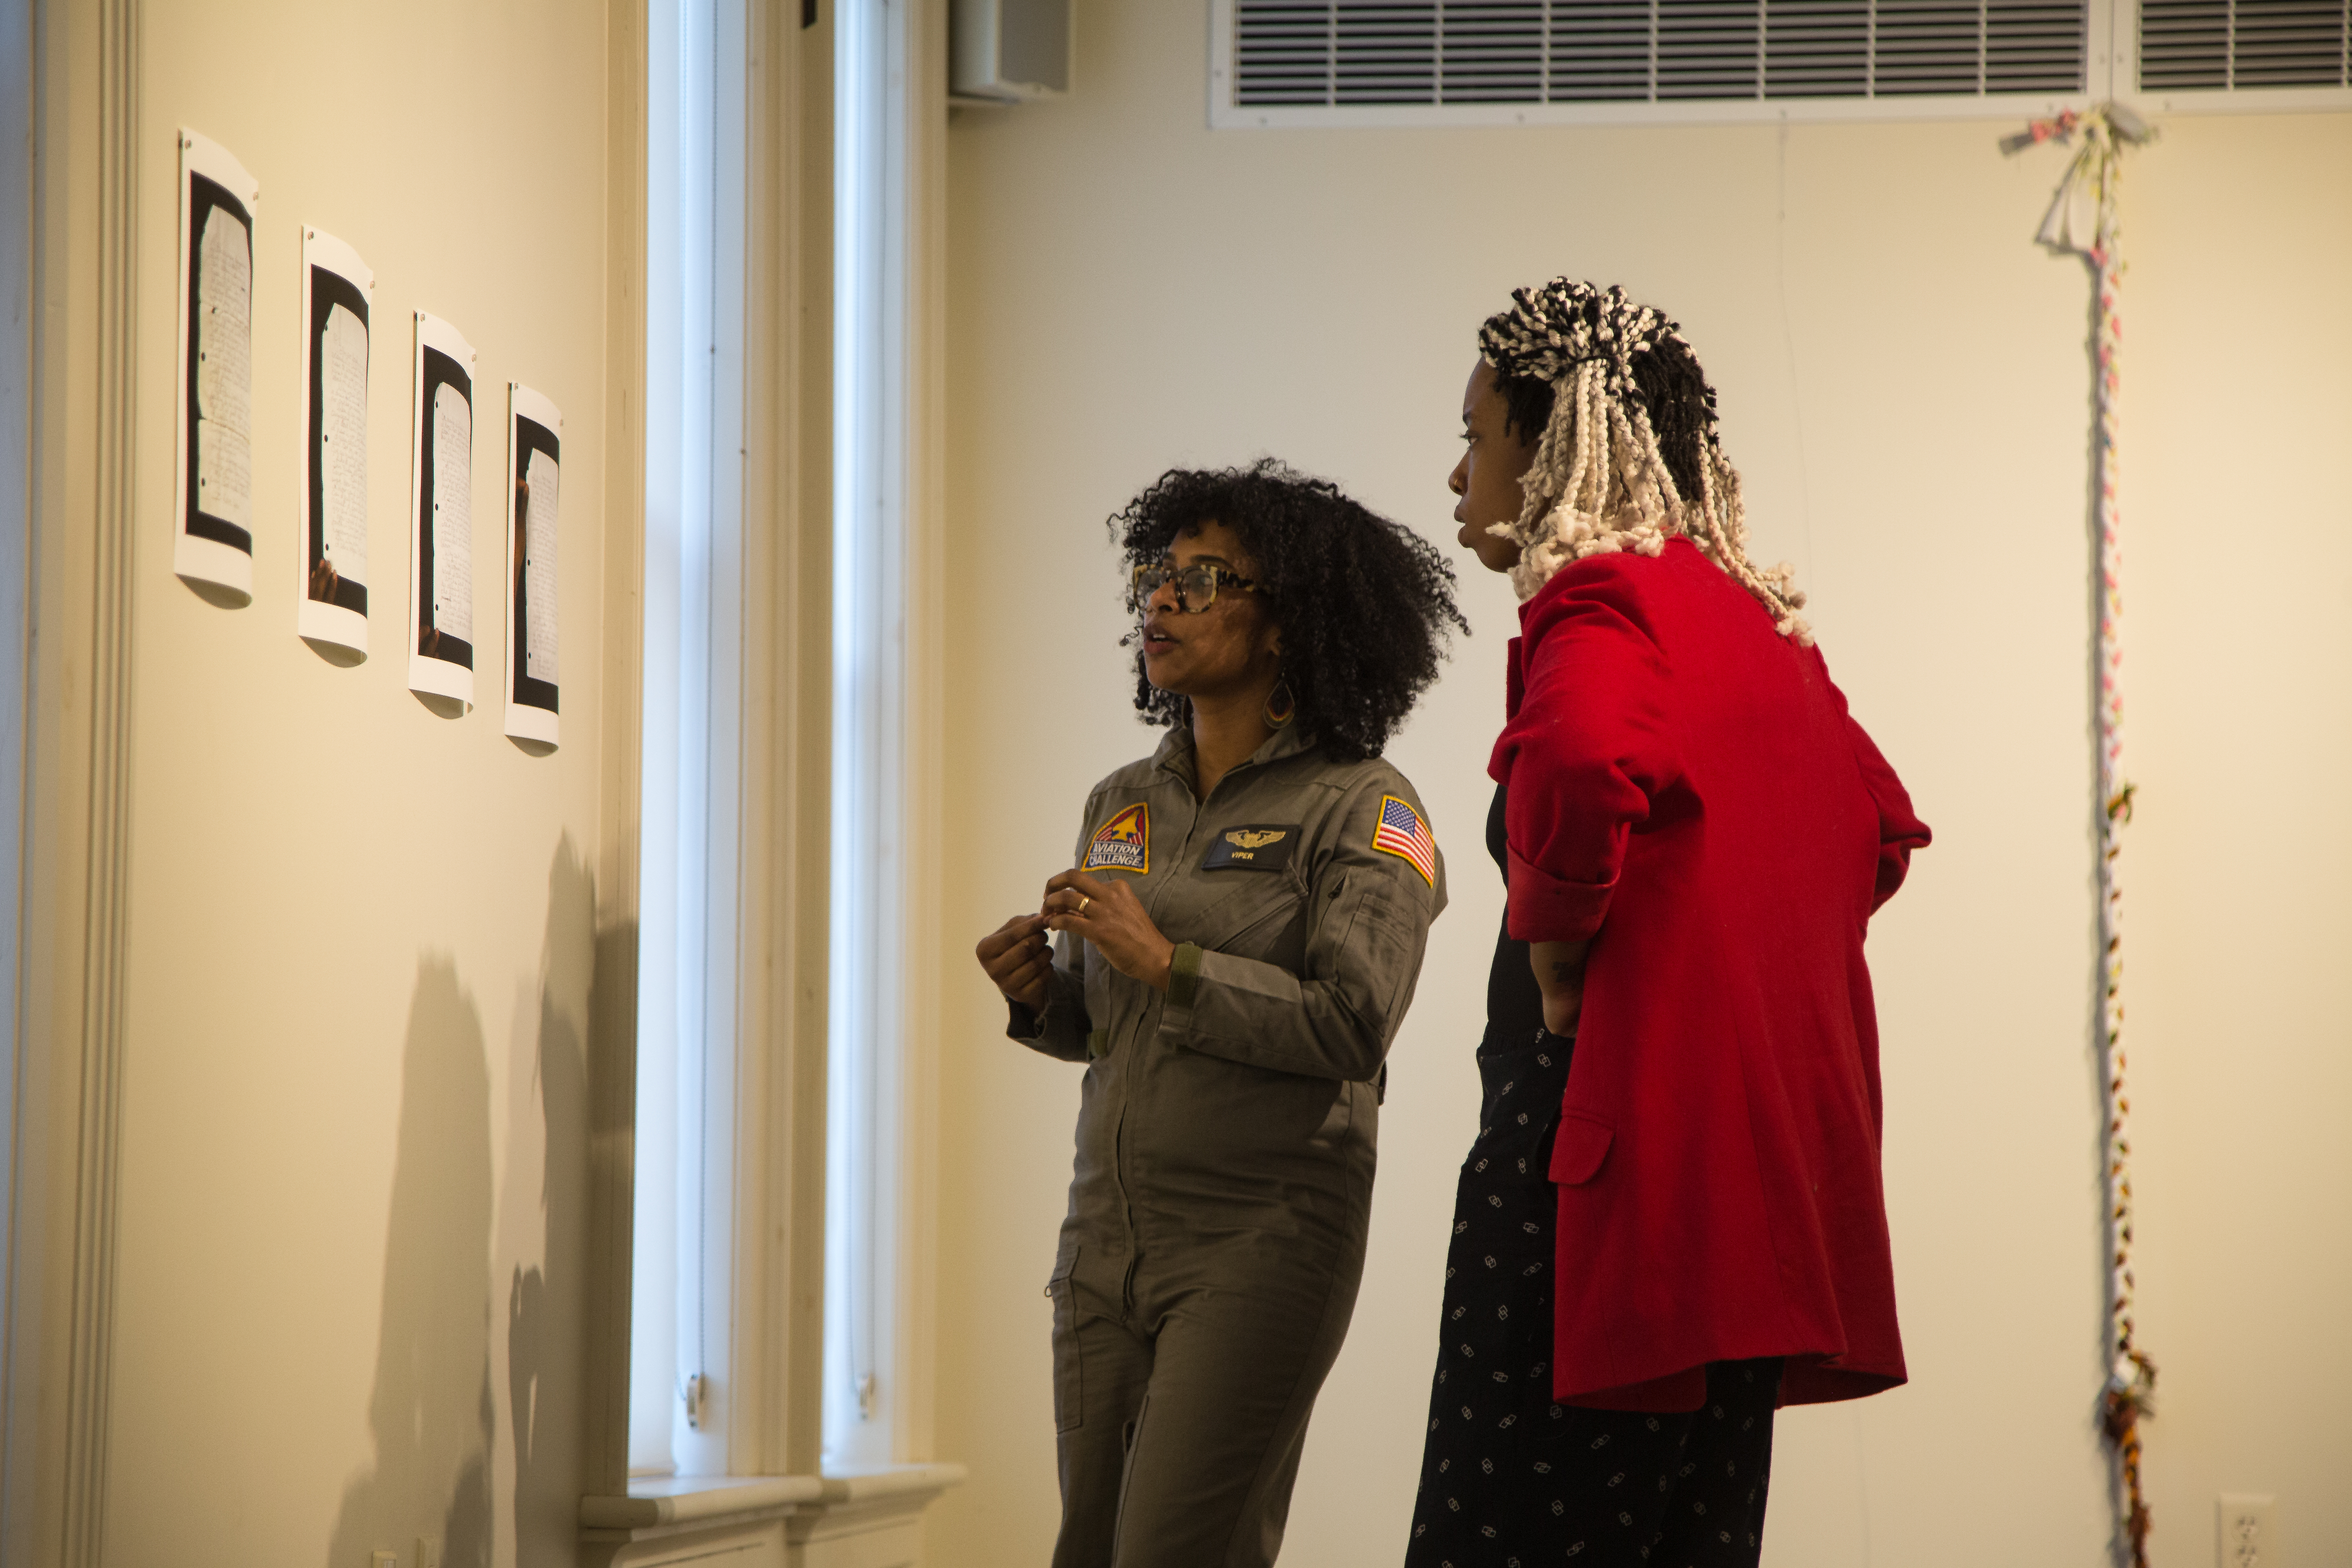 Grant Wood Fellow Tameka Norris and Anaïs Duplan at the Grant Wood Fellows Exhibition 2016-17 at C.S.P.S. Hall, Cedar Rapids, Iowa.